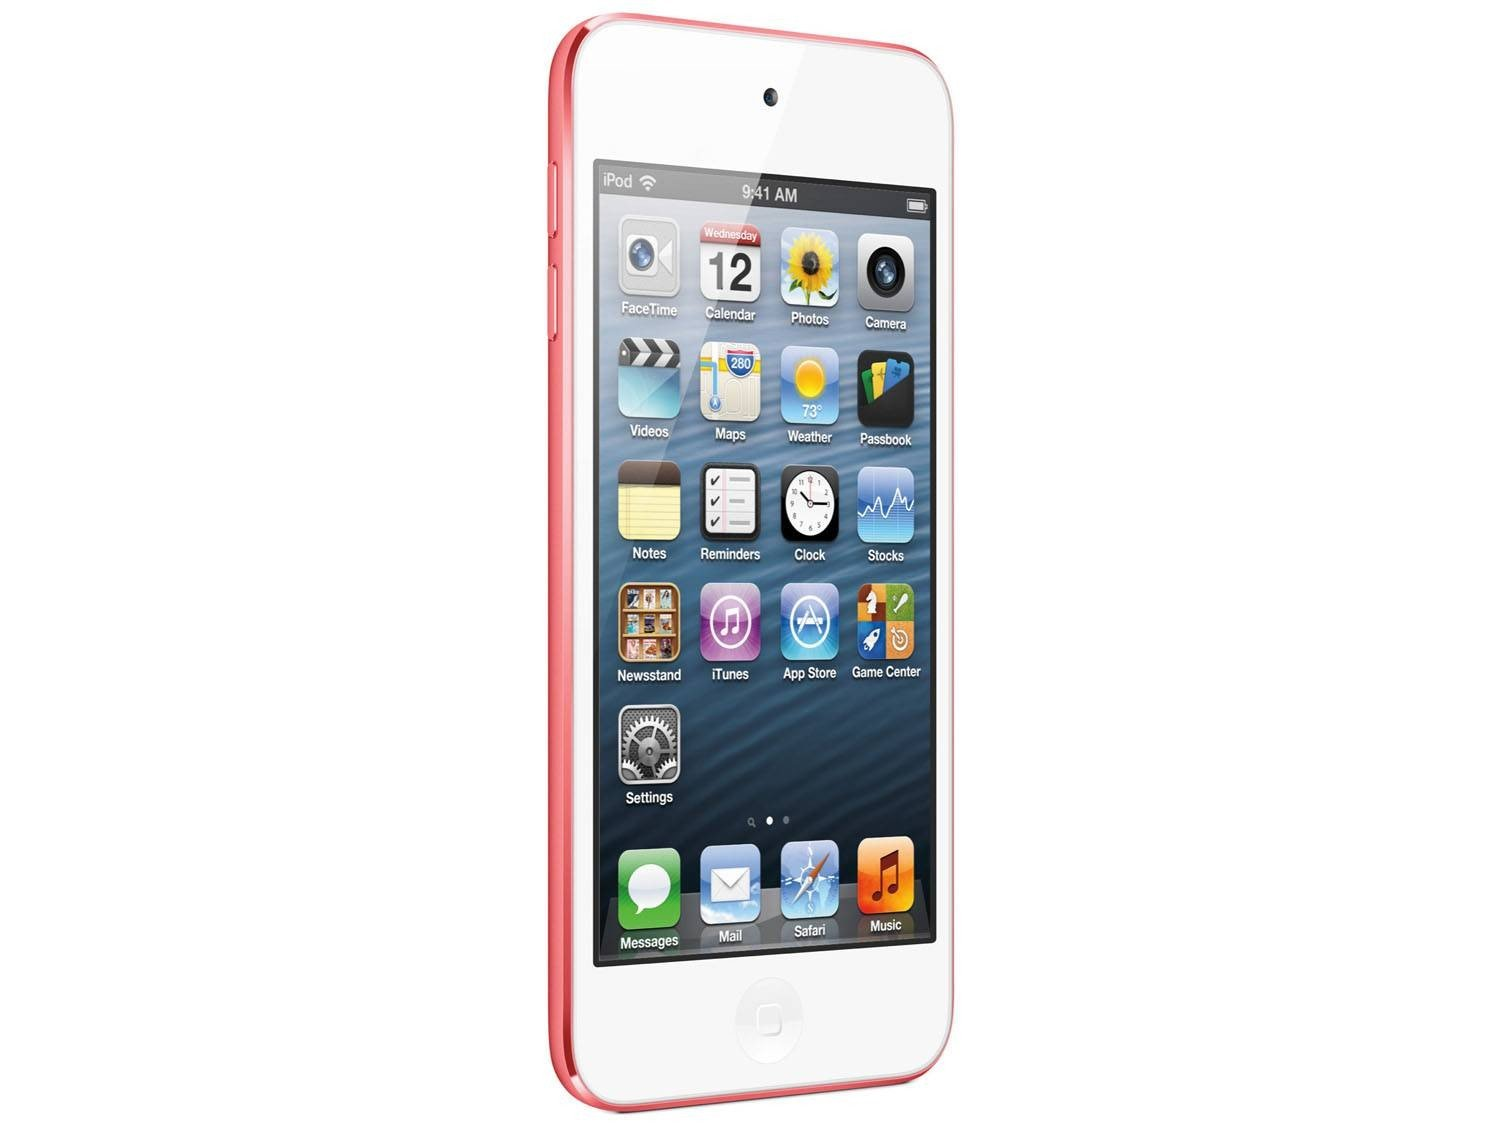 Foto 1 - iPod Touch Apple 16GB Multi-Touch Wi-Fi Bluetooth - Câmera 5MP MGFY2BZ/A Rosa